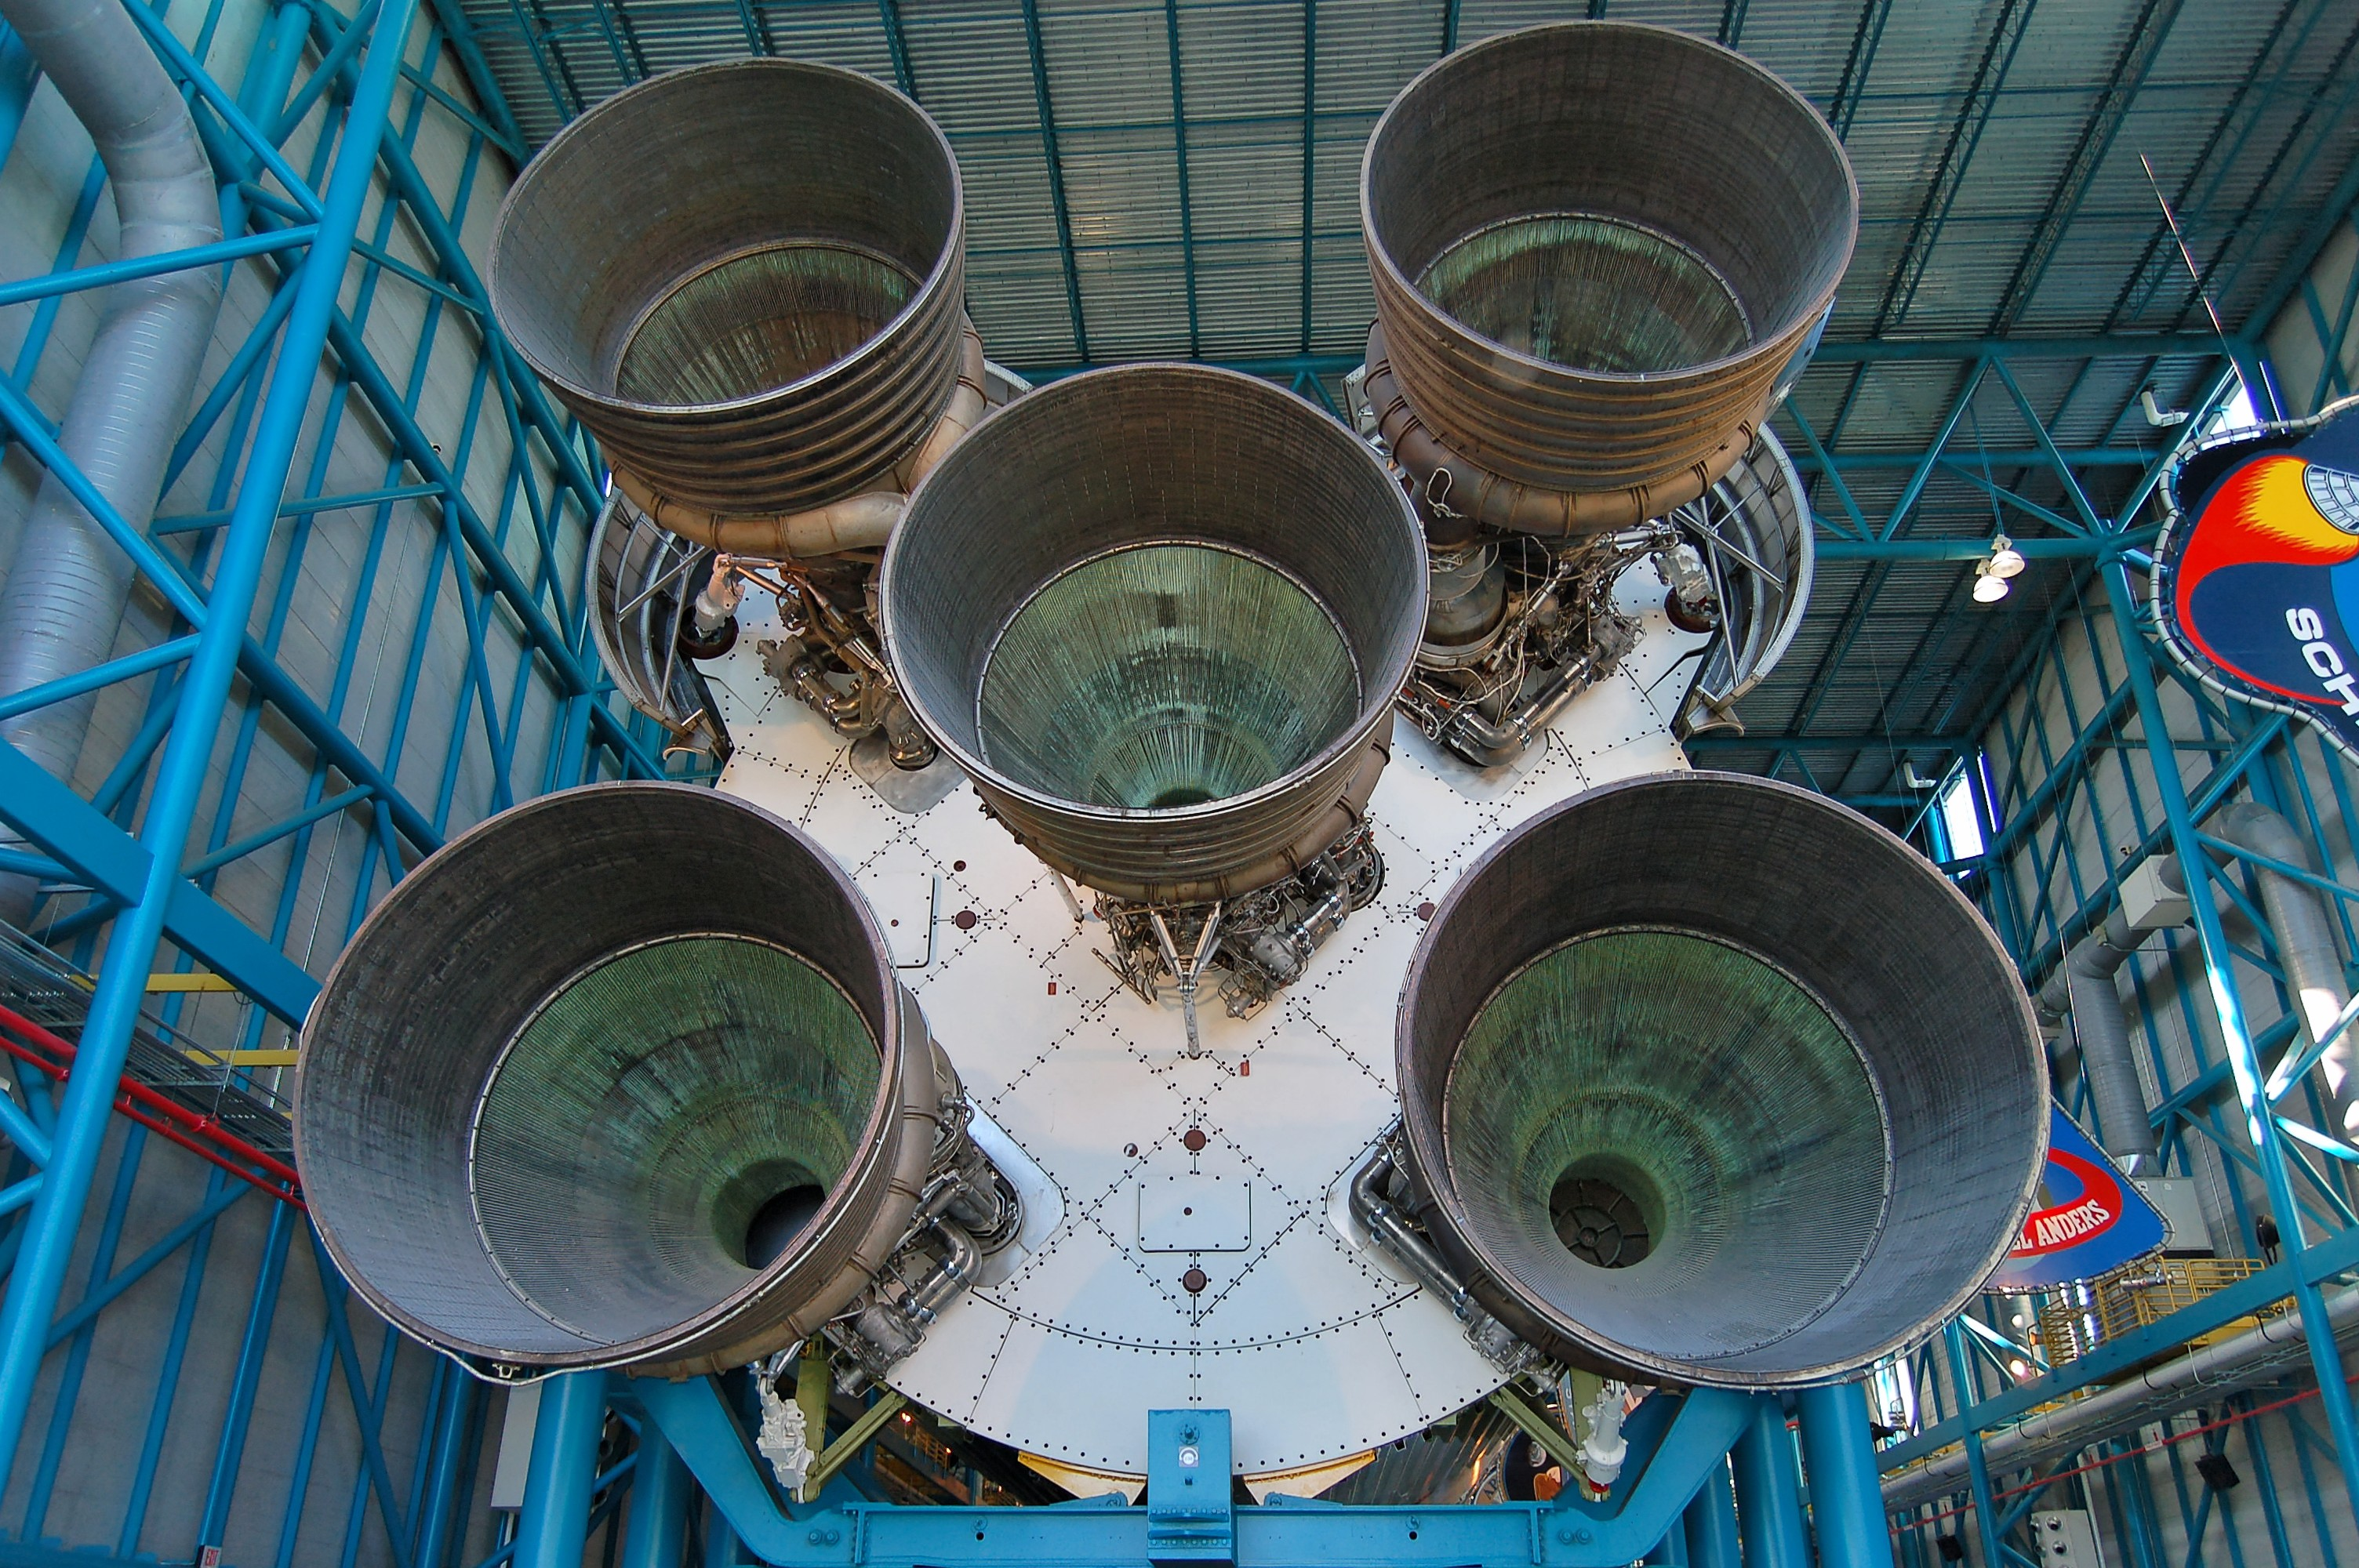 http://fr.academic.ru/pictures/frwiki/83/Saturn_V_Rocket_Booster.jpg